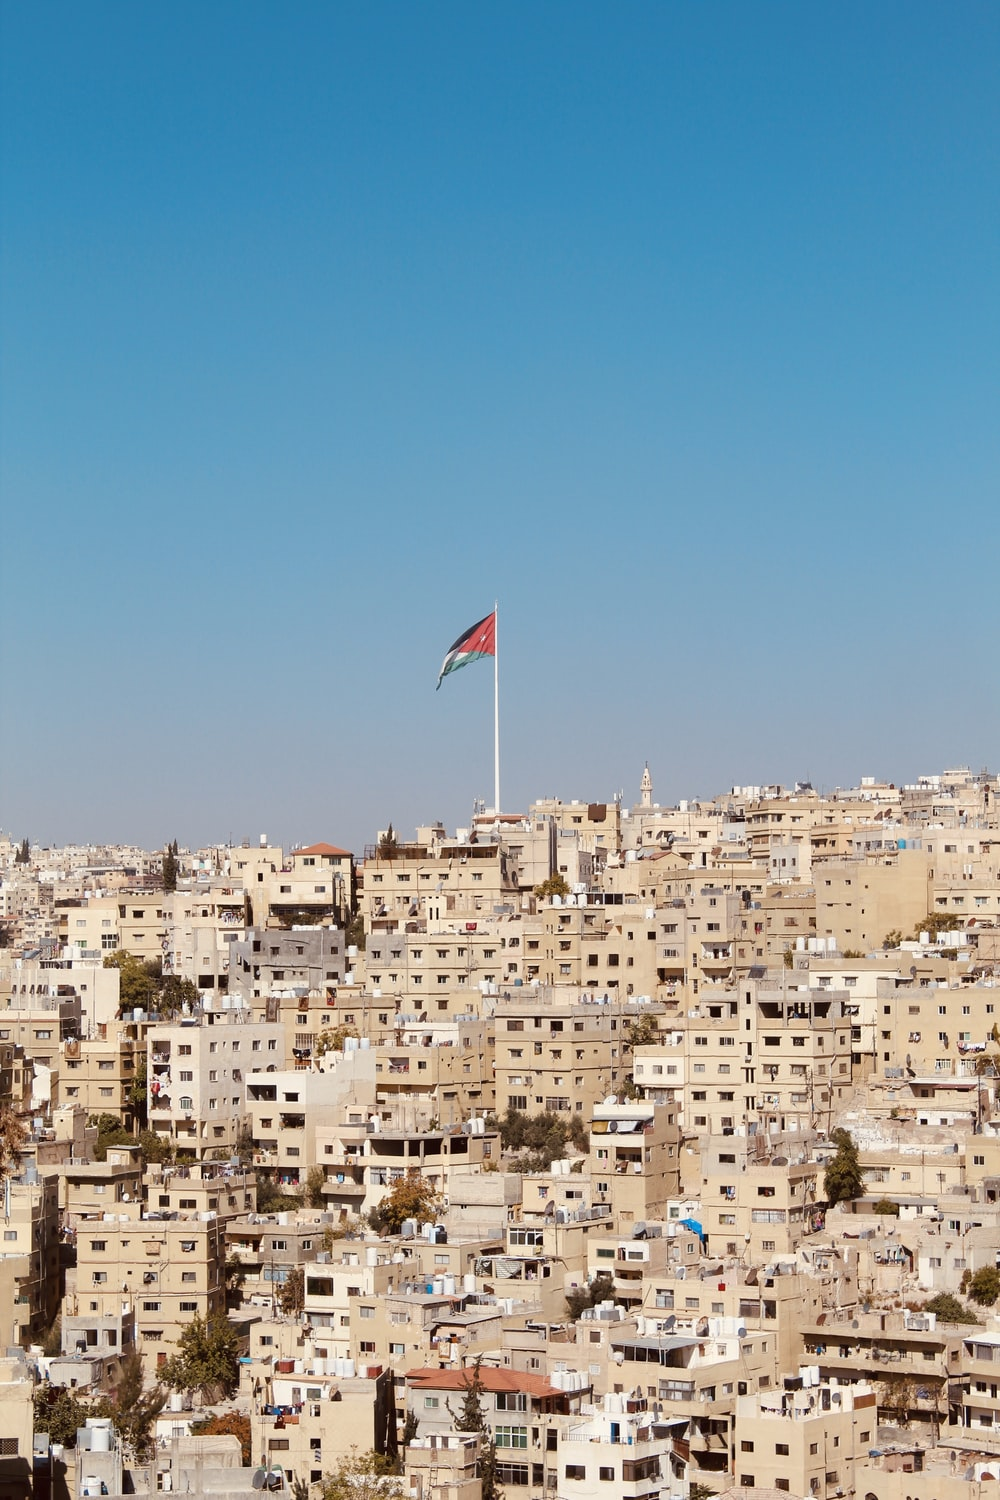 brown houses with red and blue flag waving on pole